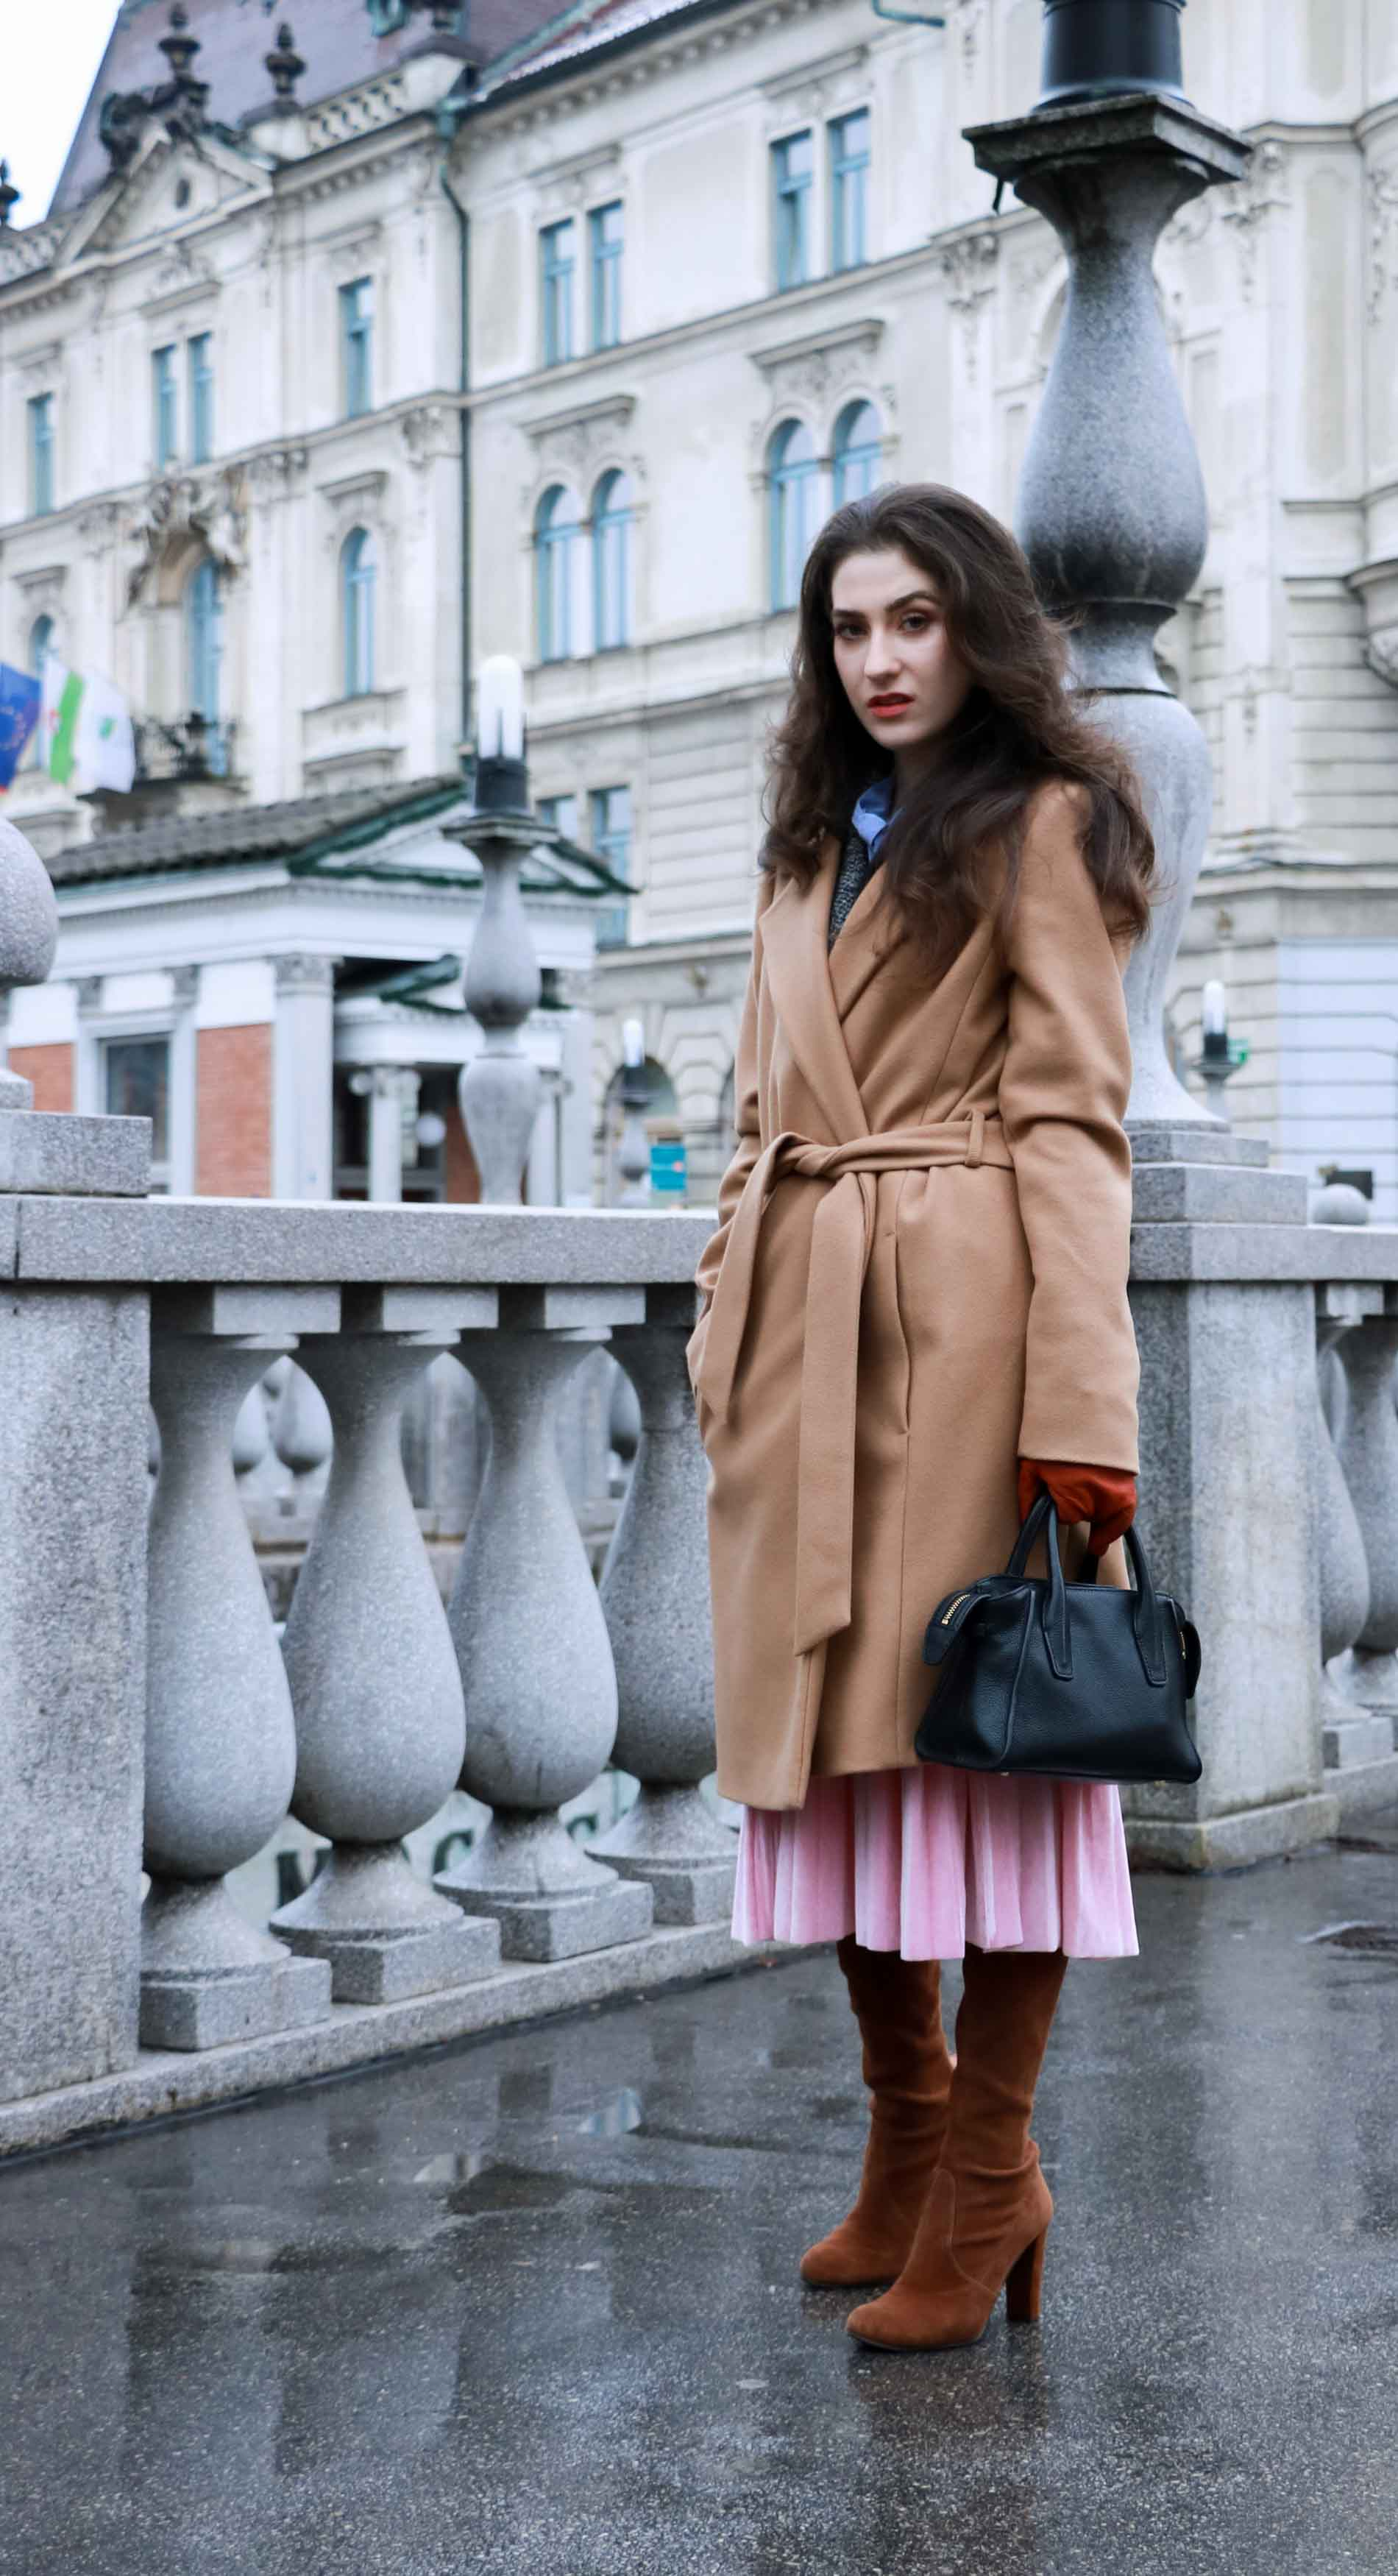 Fashion Blogger Veronika Lipar of Brunette from Wall Street wearing winter outfit, ESCADA wrap camel coat, pink velvet midi pleated skirt, brown Stuart Weitzman Highland OTK boots, black top handle bag, leather gloves, when going to Christmas brunch